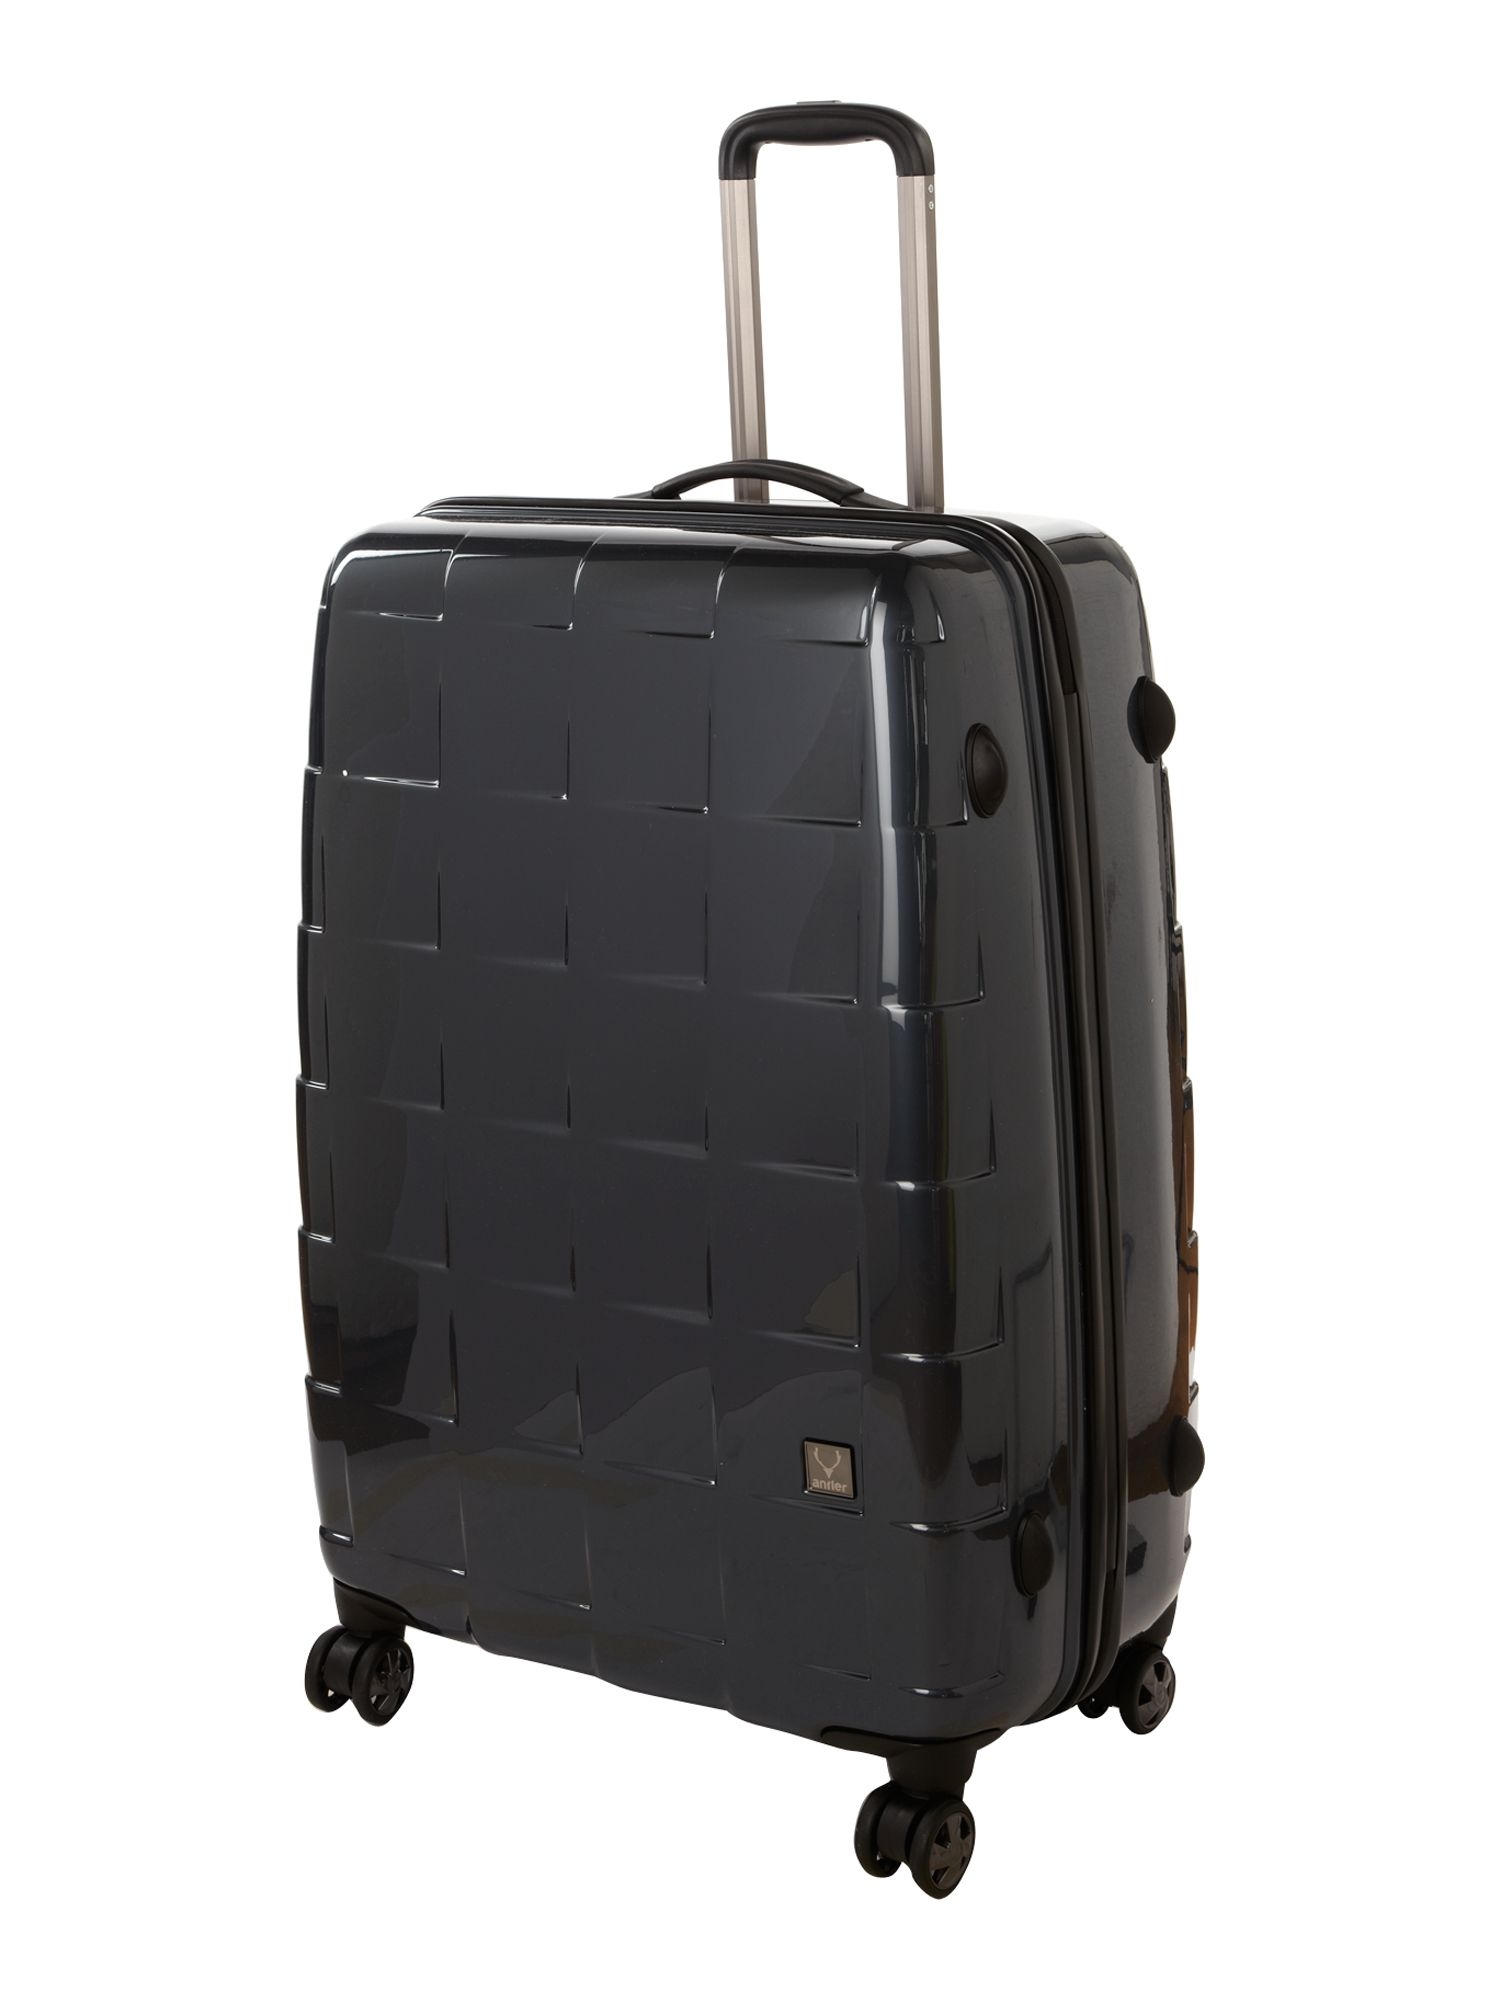 Camden large suitcase - charcoal